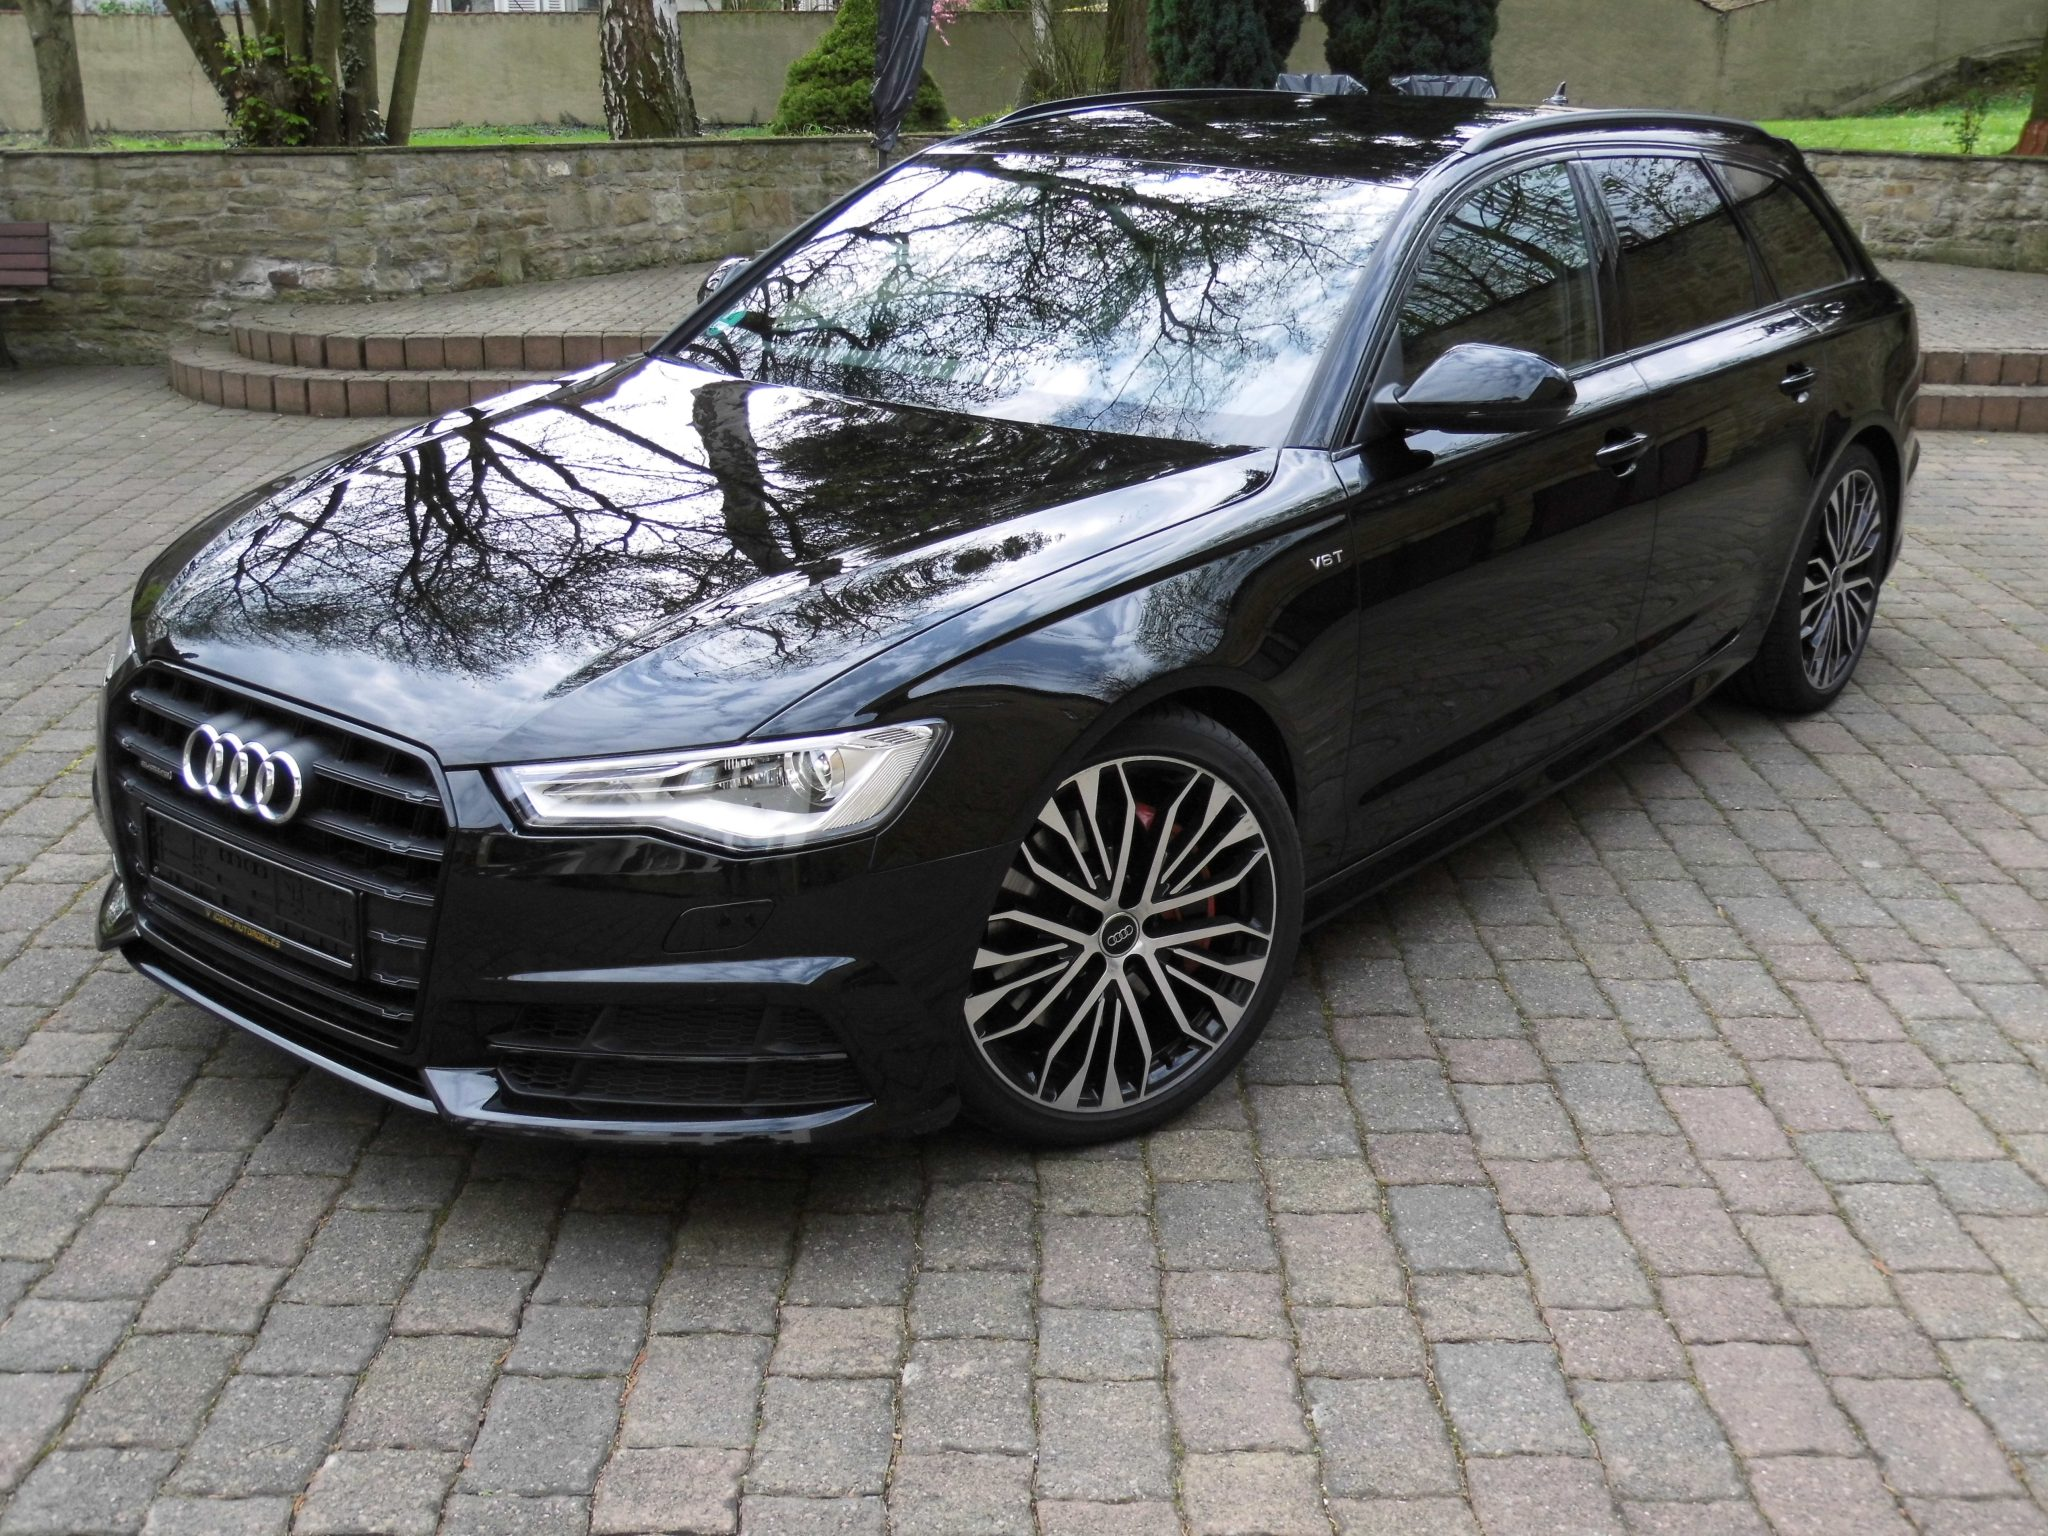 audi a6 3 0 tdi competition s line quattro iconic. Black Bedroom Furniture Sets. Home Design Ideas